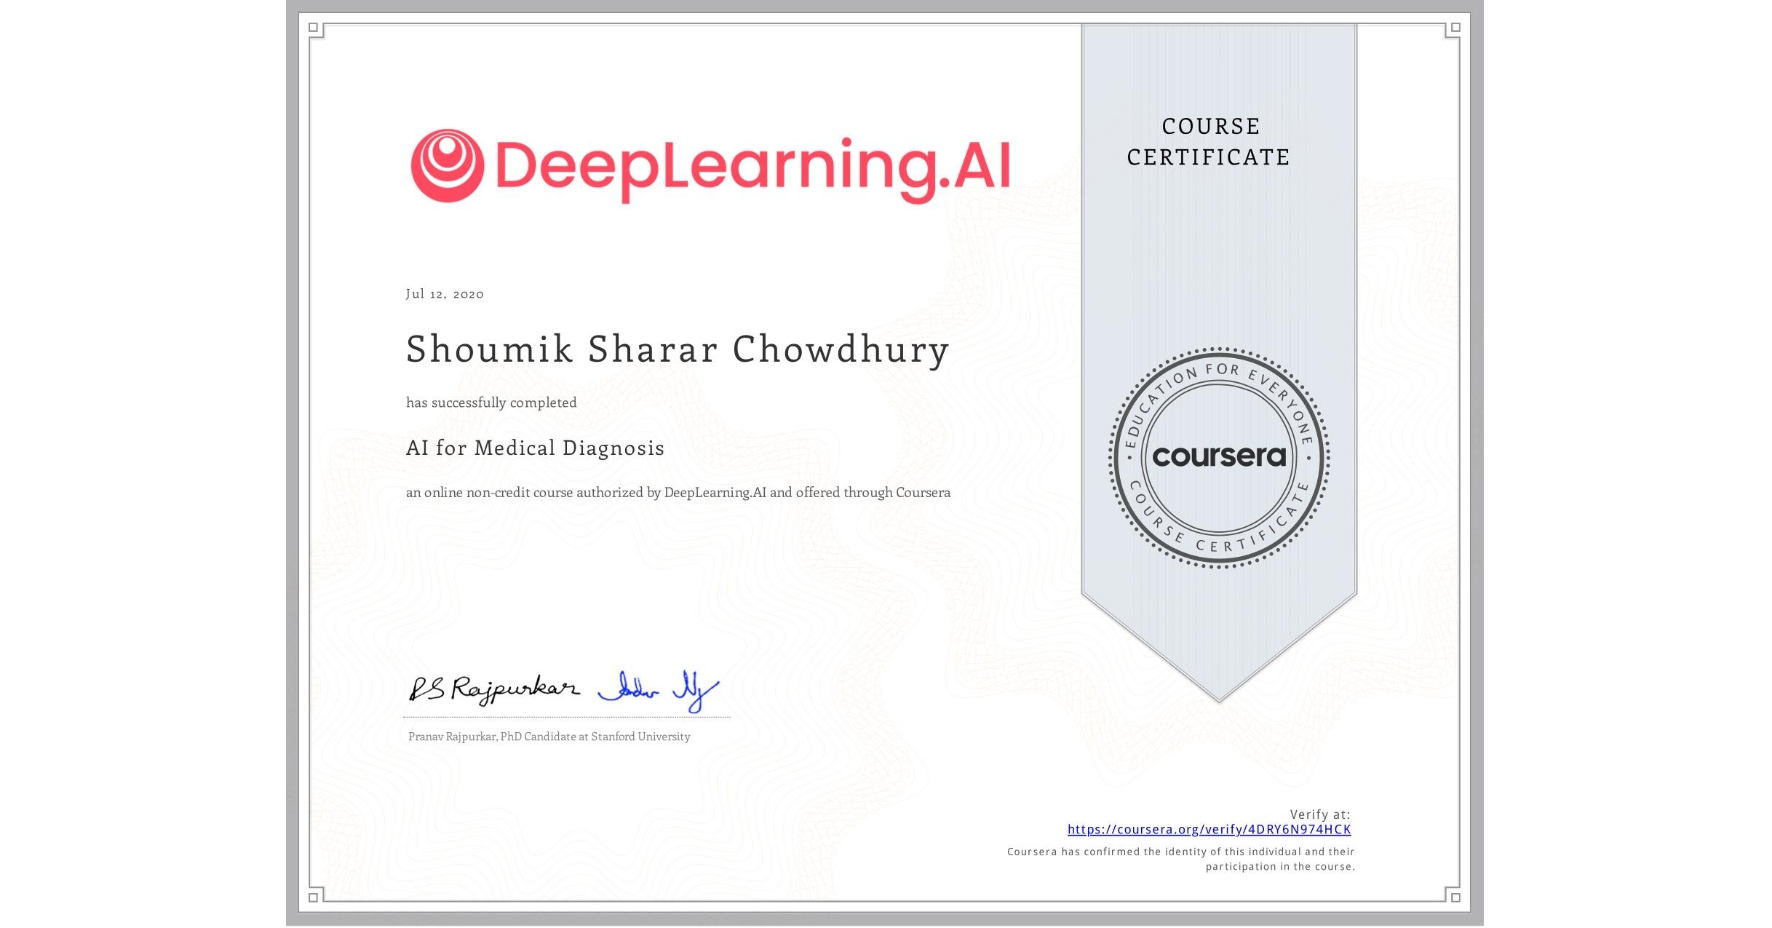 View certificate for Shoumik Sharar Chowdhury, AI for Medical Diagnosis, an online non-credit course authorized by DeepLearning.AI and offered through Coursera